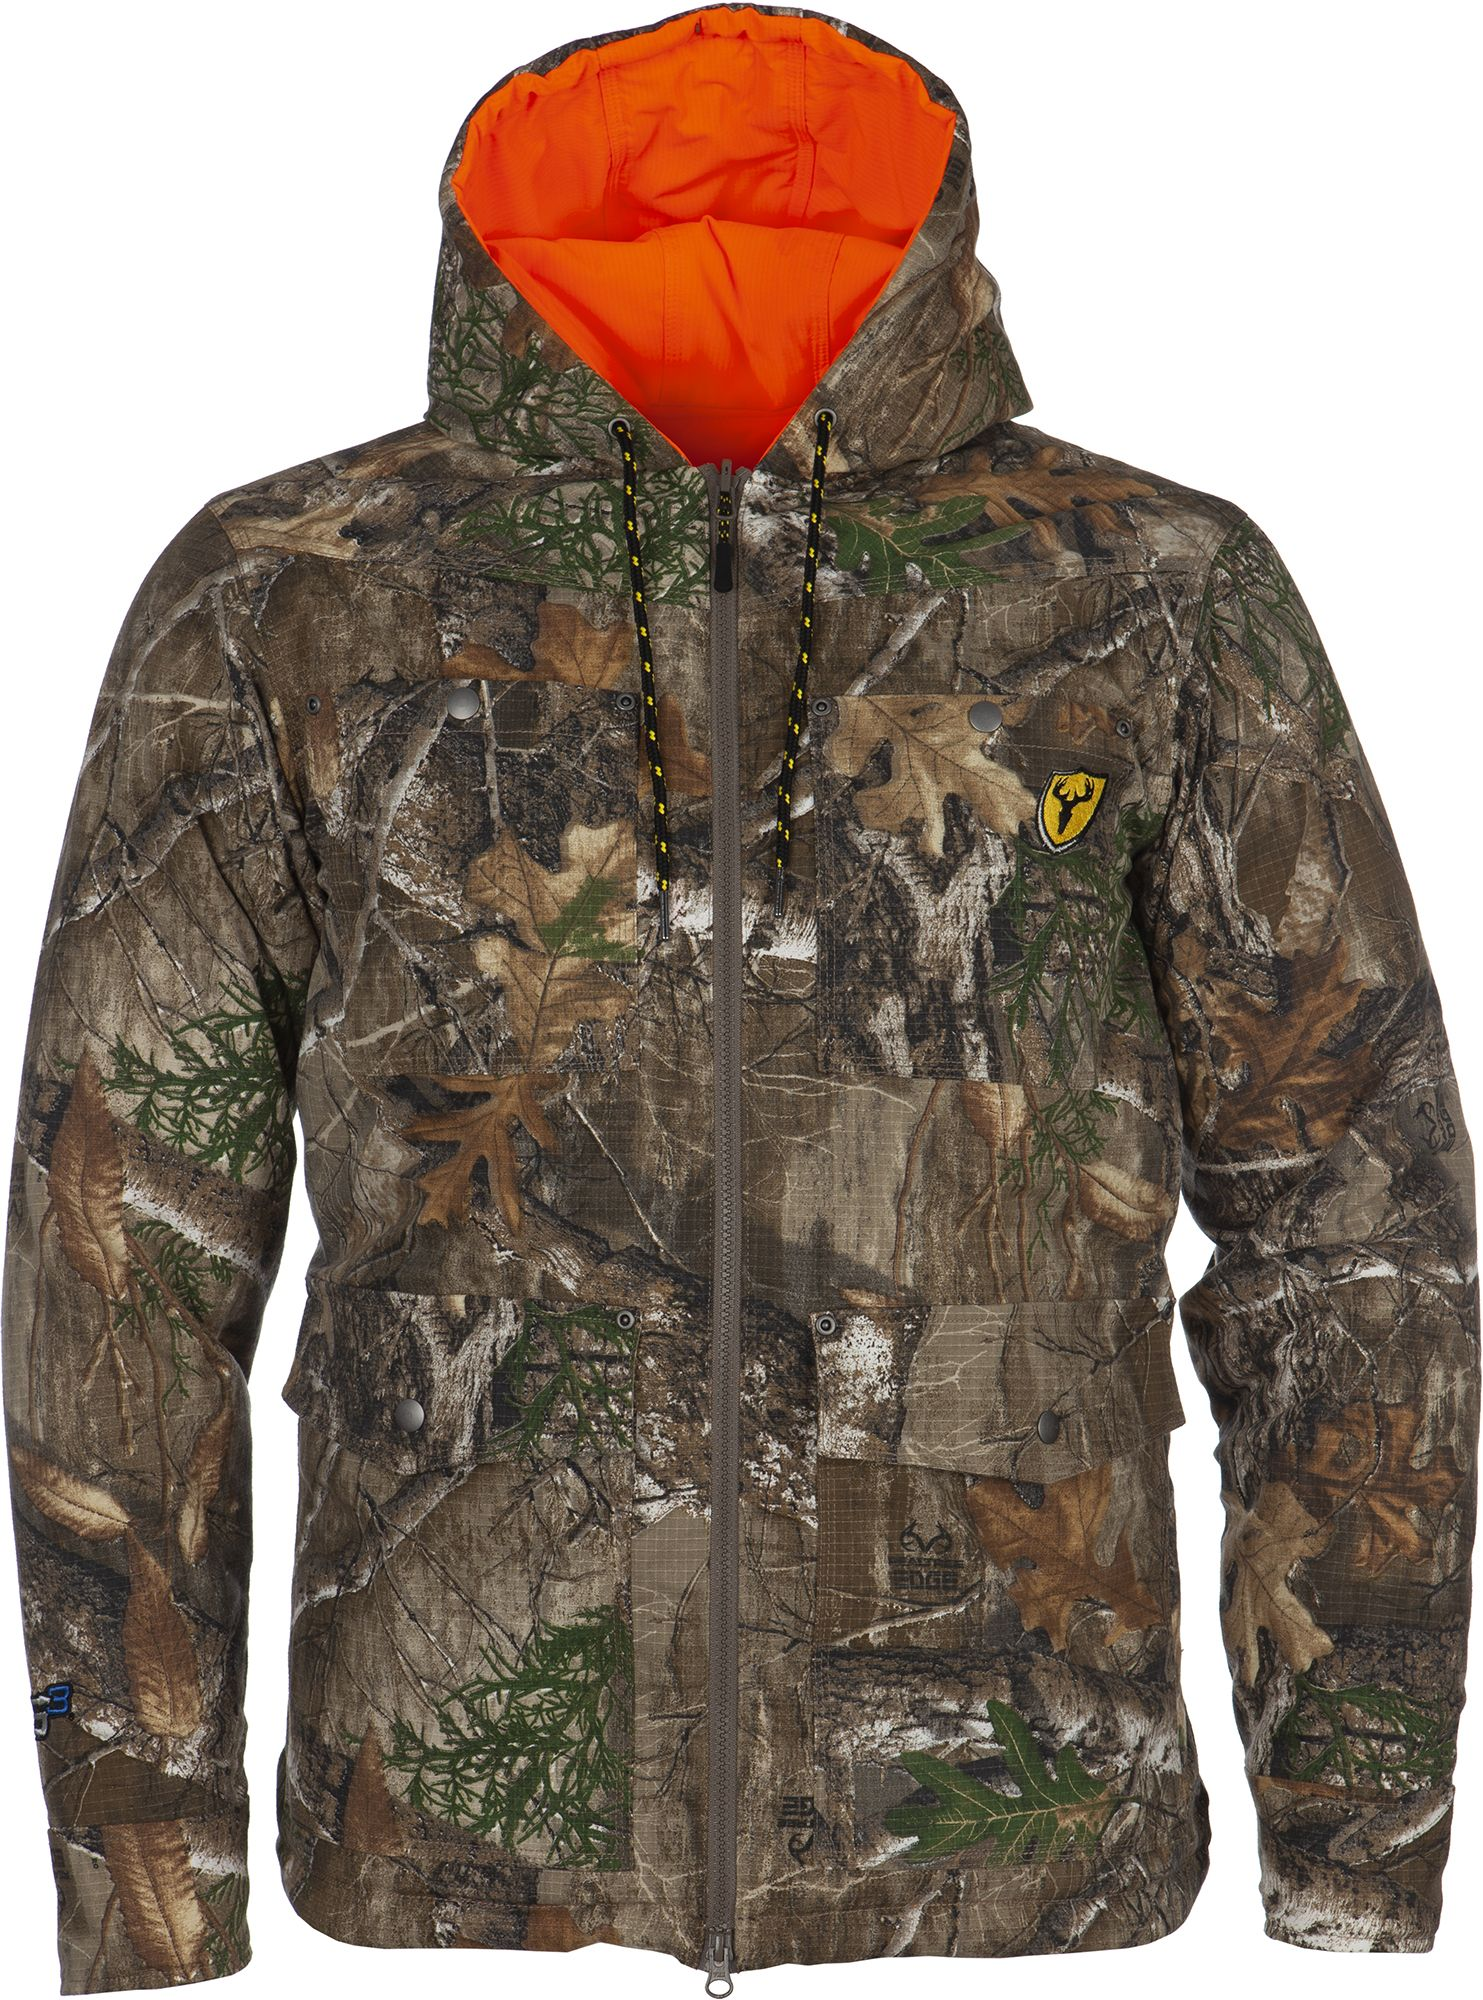 Blocker Outdoors Men's Shield Series Evolve Reversible Parka, Size: Medium, Blaze thumbnail